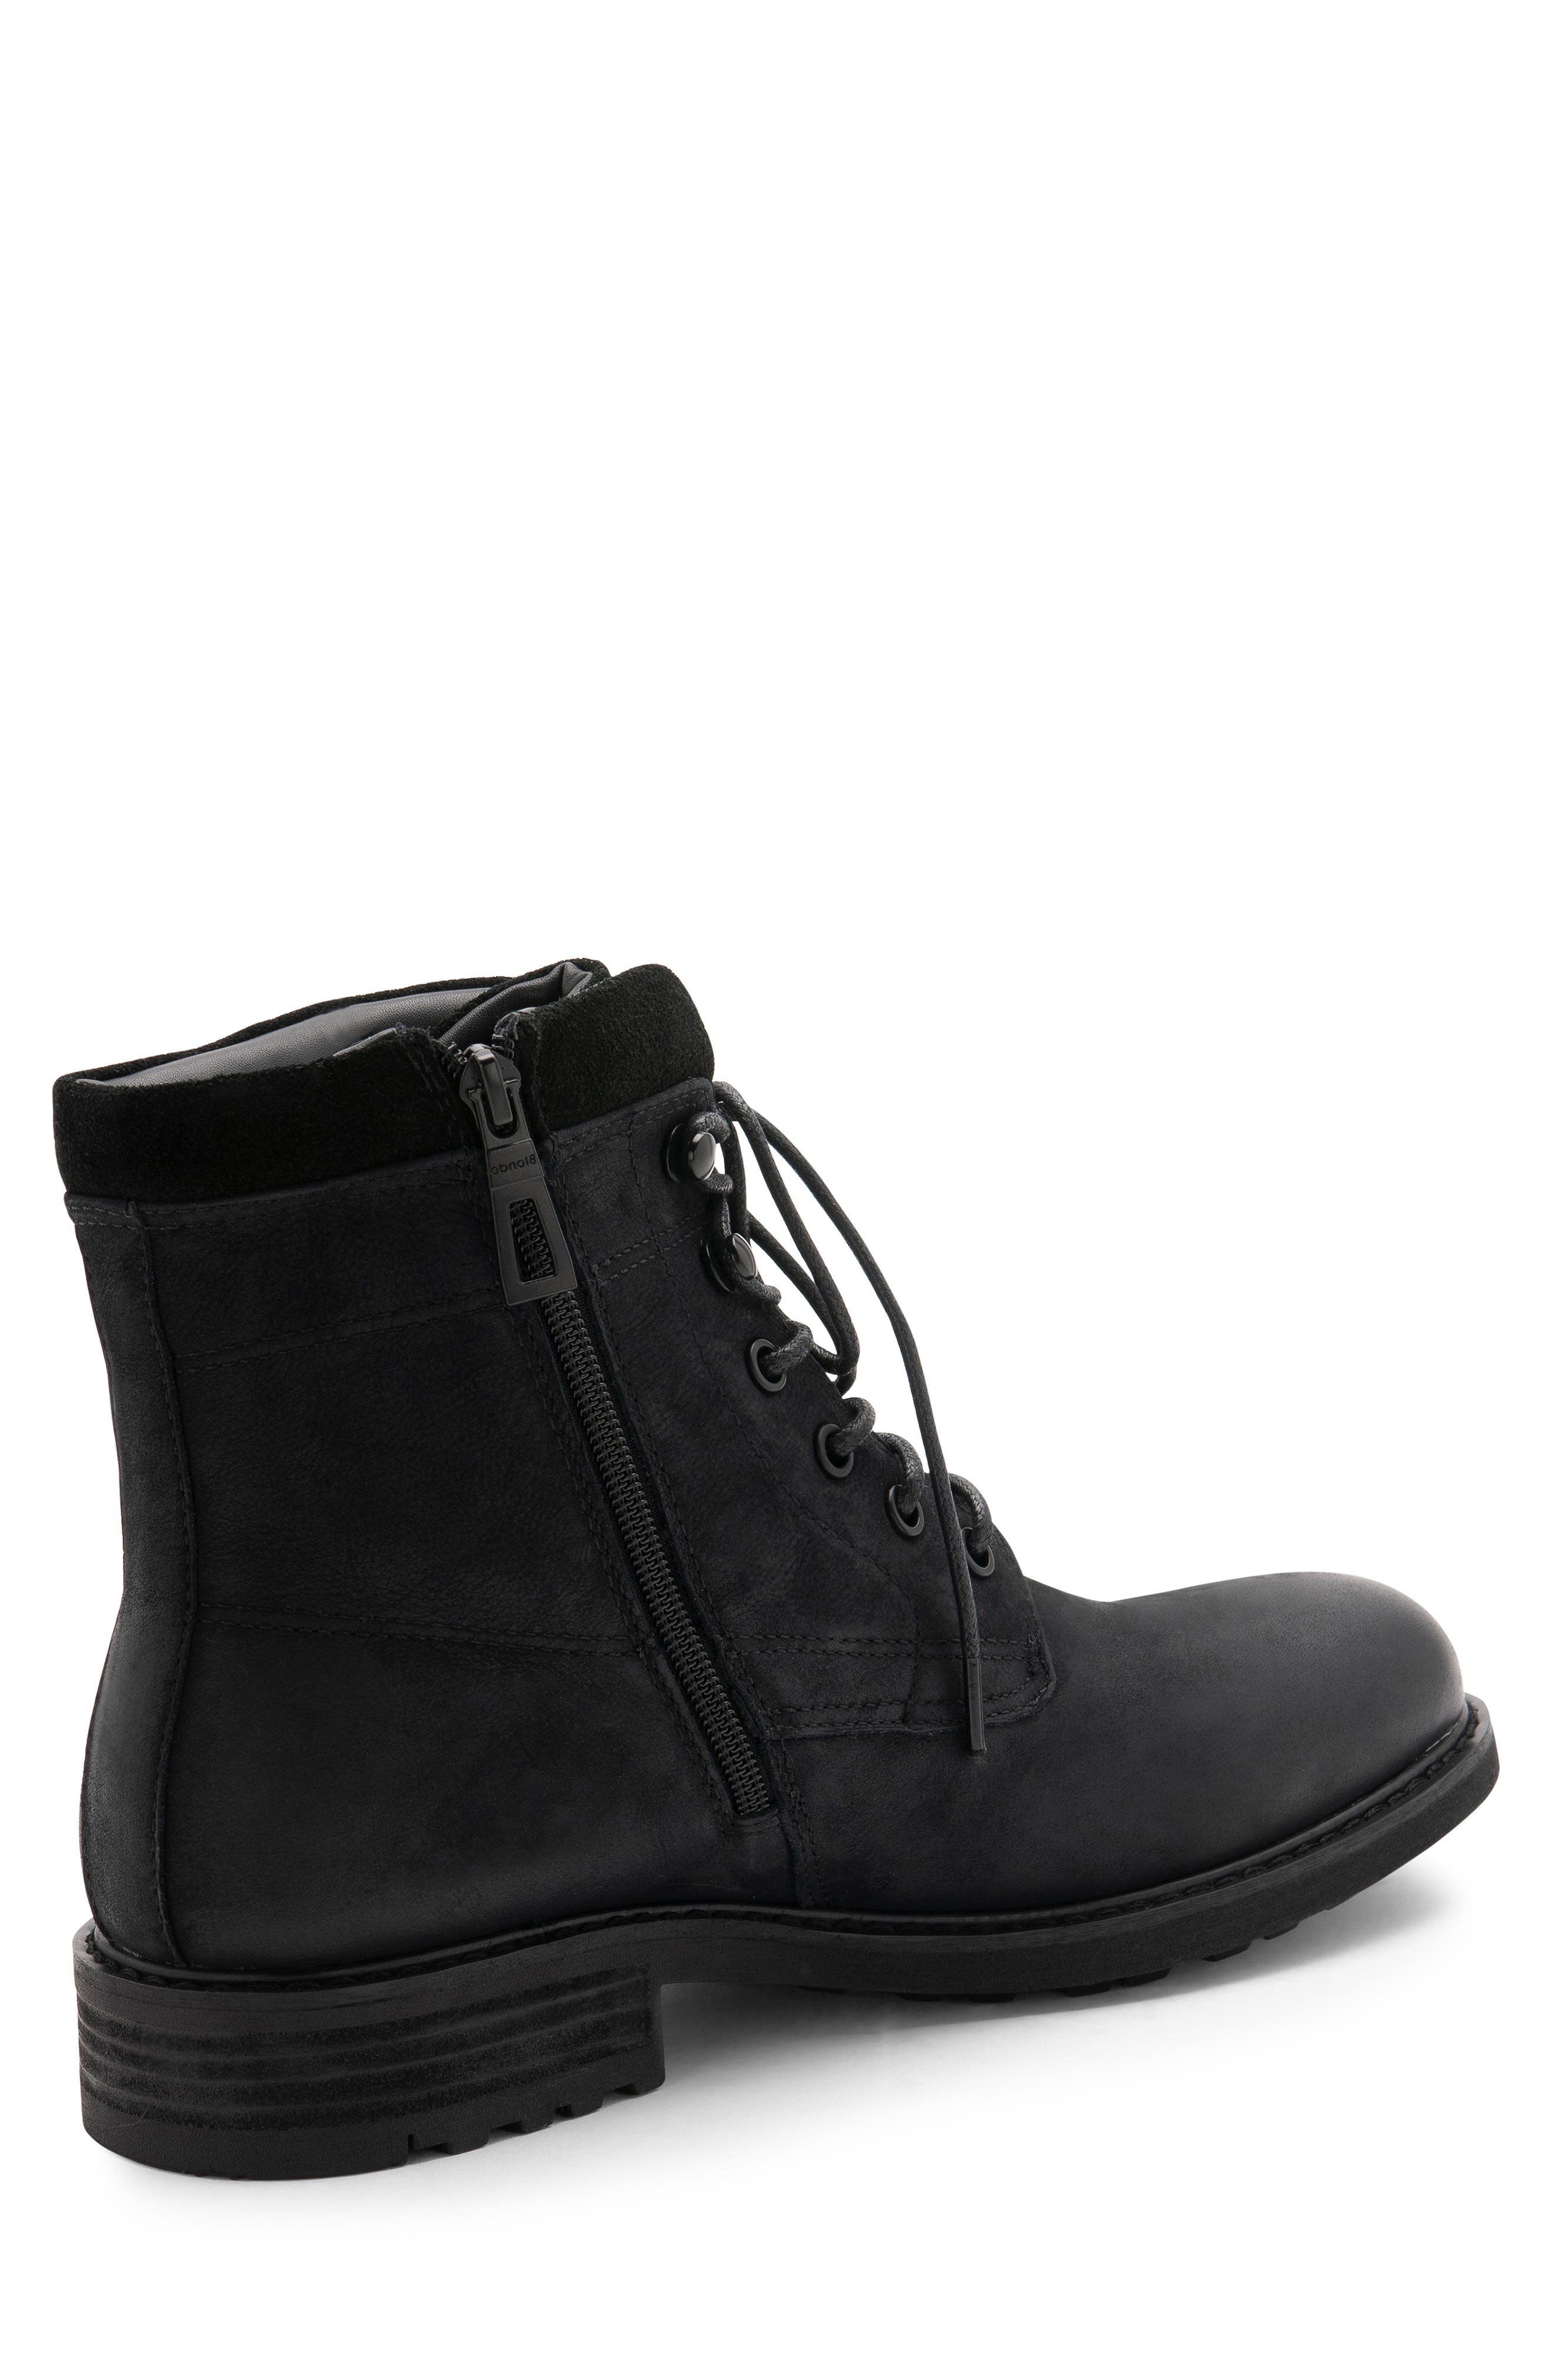 BLONDO, Patton Waterproof Plain Toe Boot, Alternate thumbnail 8, color, BLACK NUBUCK